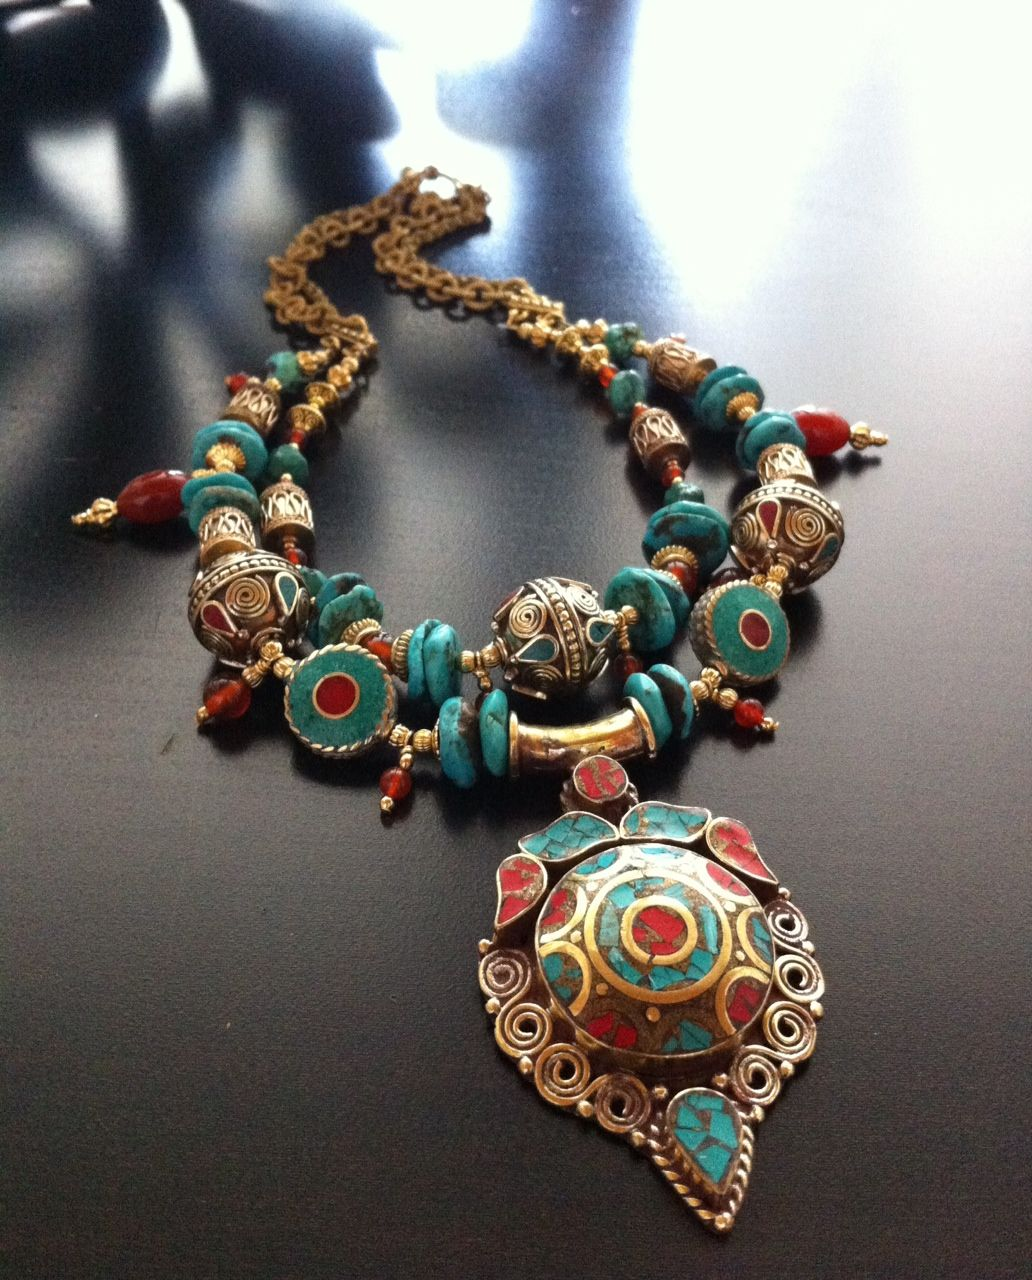 ROX Turquoise and Carnelian Inlay Tibetan Pendant with Inlay Brass Beads 7c3aff5d5f1c4